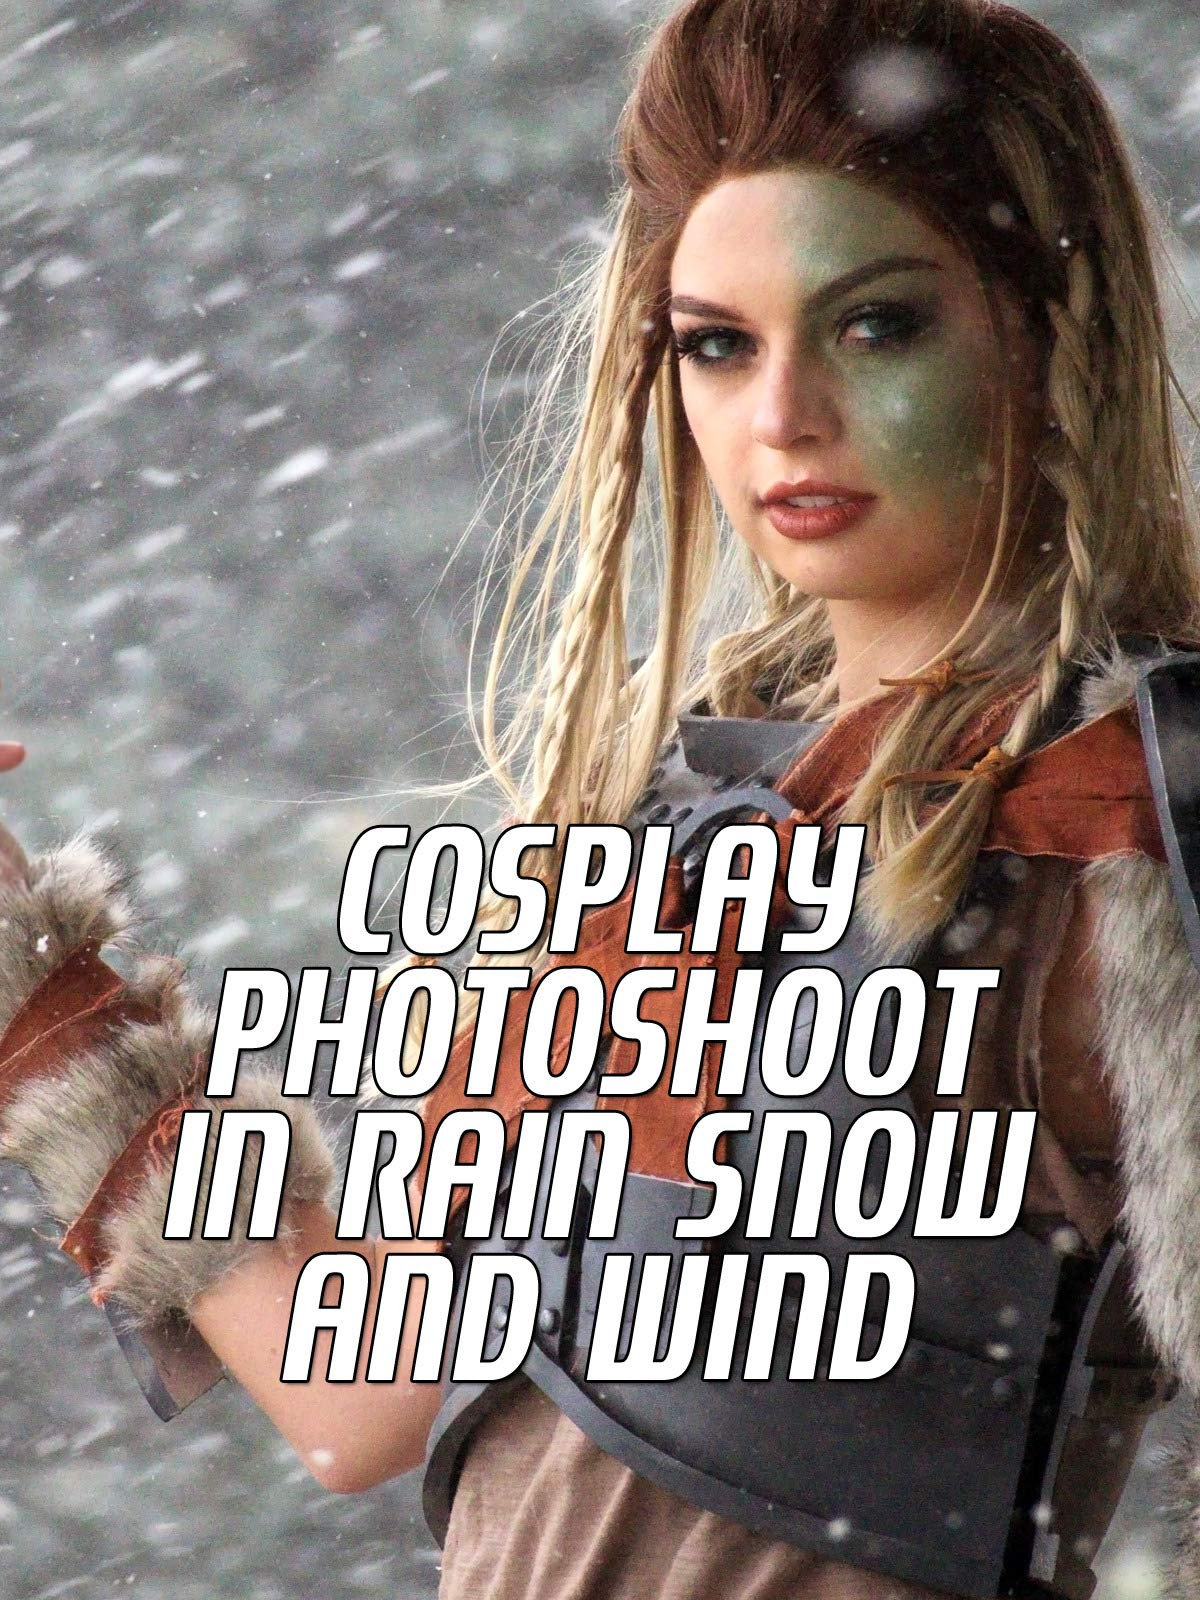 Cosplay Photoshoot in Rain Snow and Wind